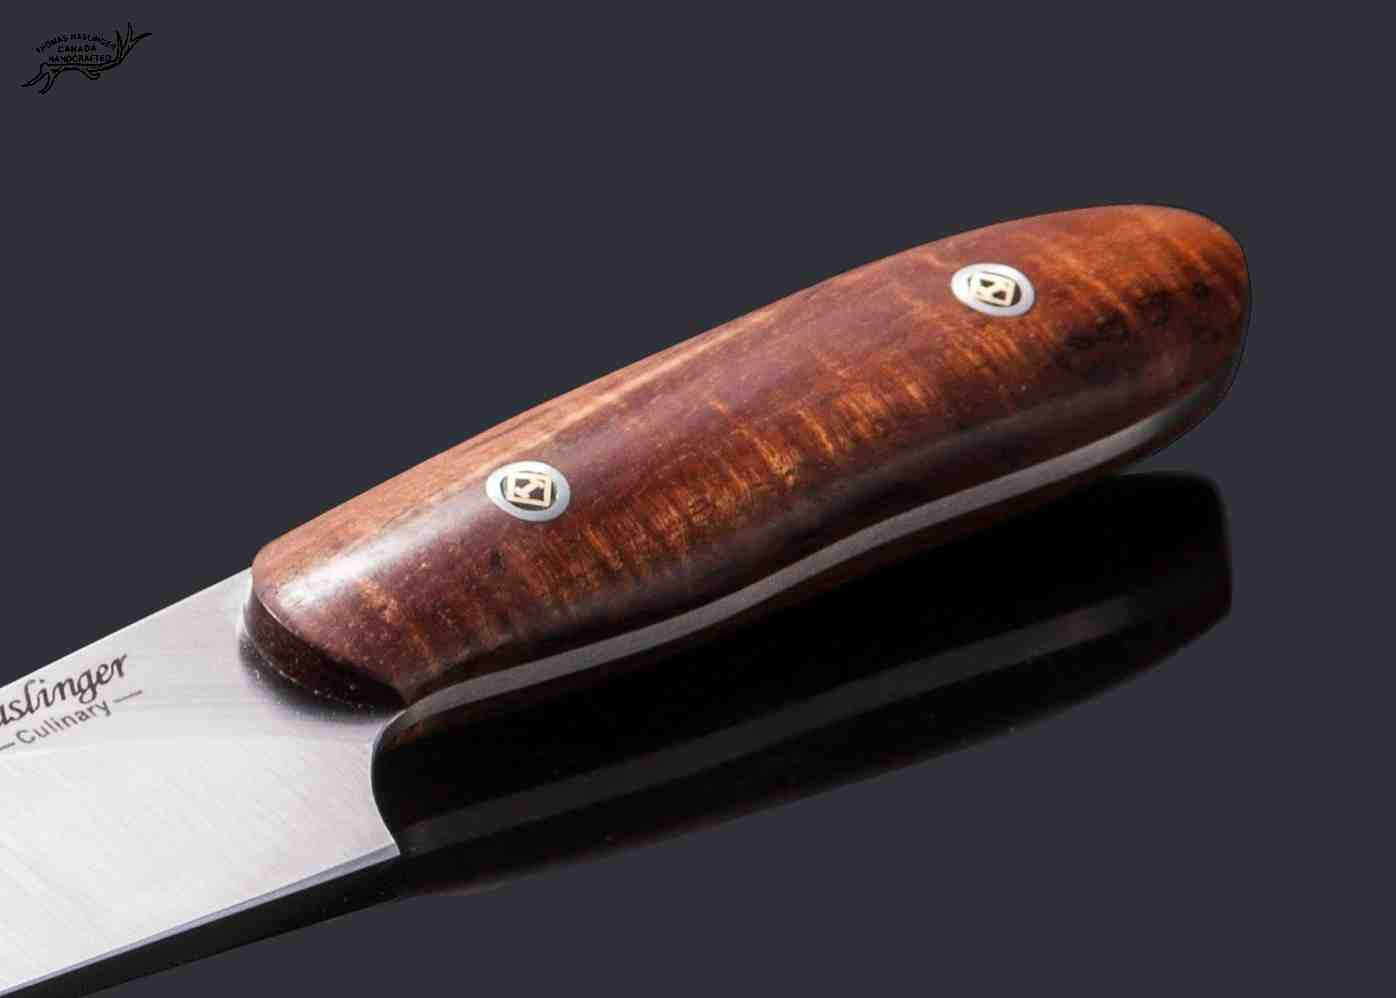 Santuko paring knife handled in spalted koa - handle view